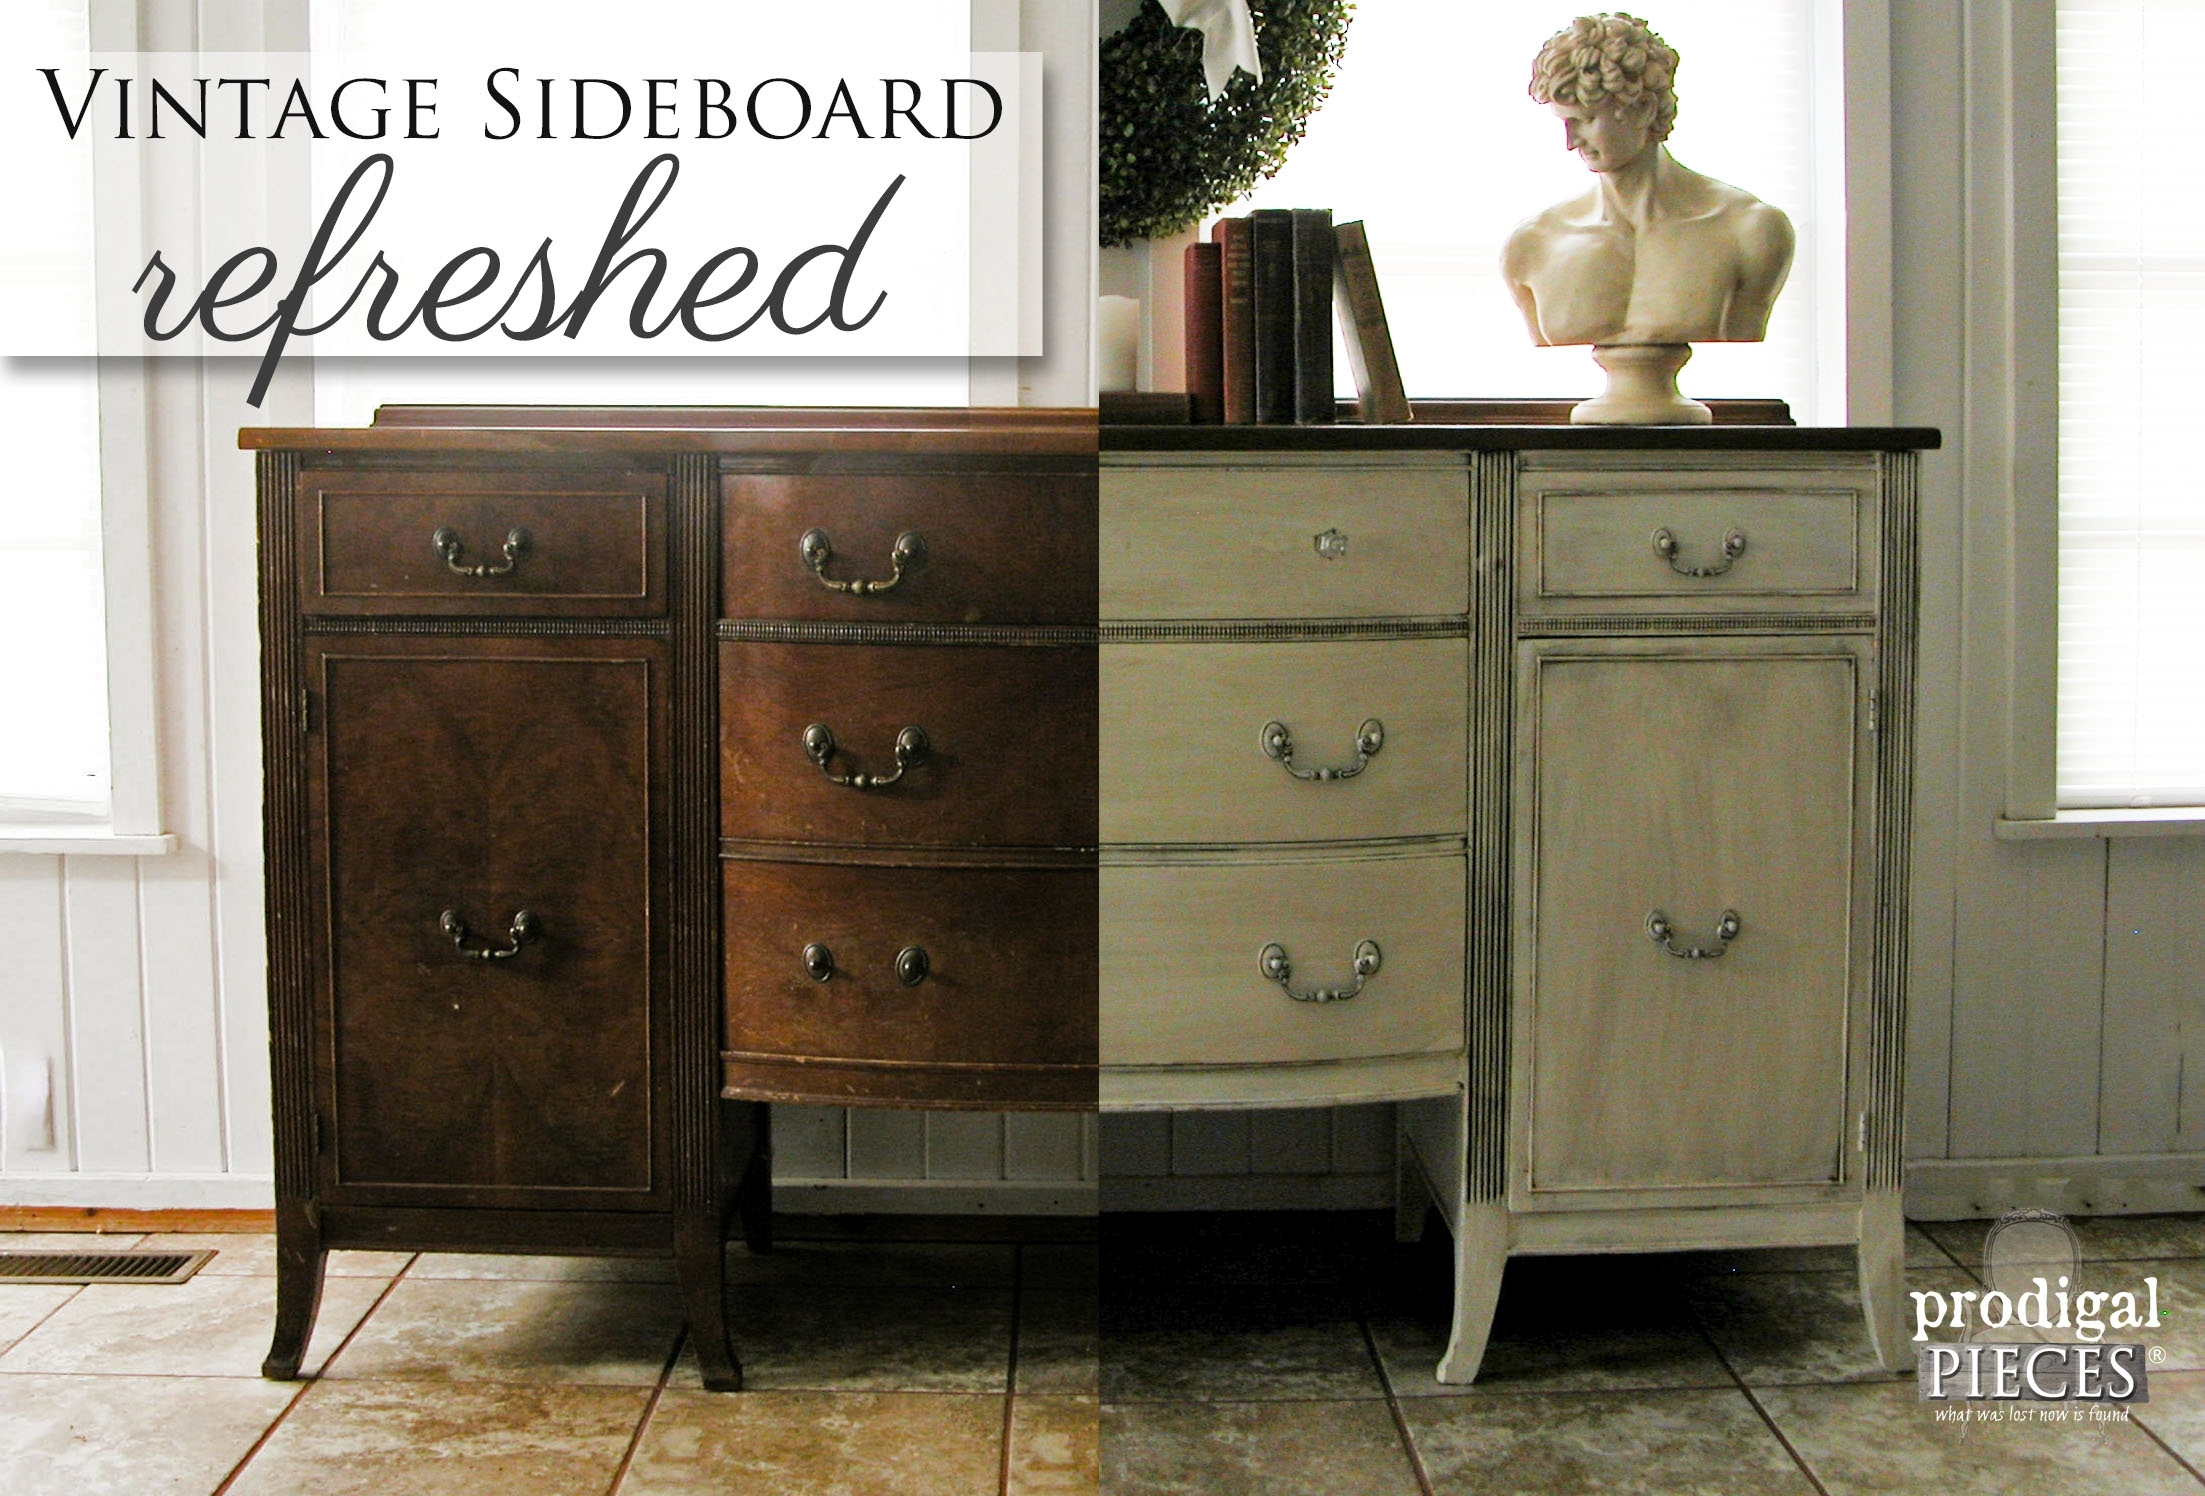 Vintage Sideboard Refreshed - Prodigal Pieces regarding Vintage Brown Textured Sideboards (Image 28 of 30)